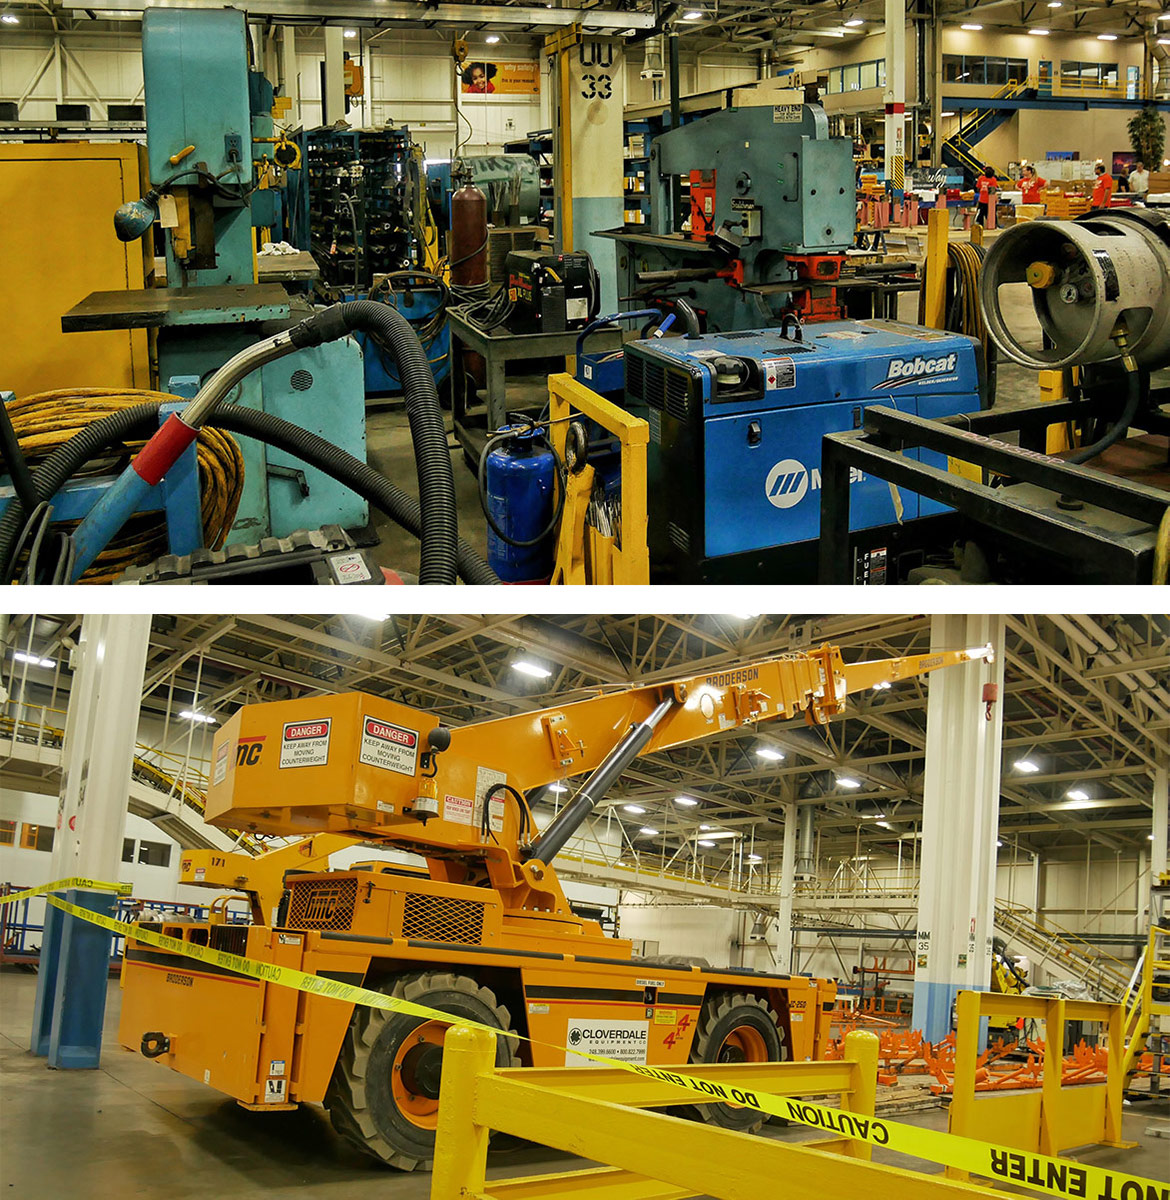 equipment inside an assembly plant